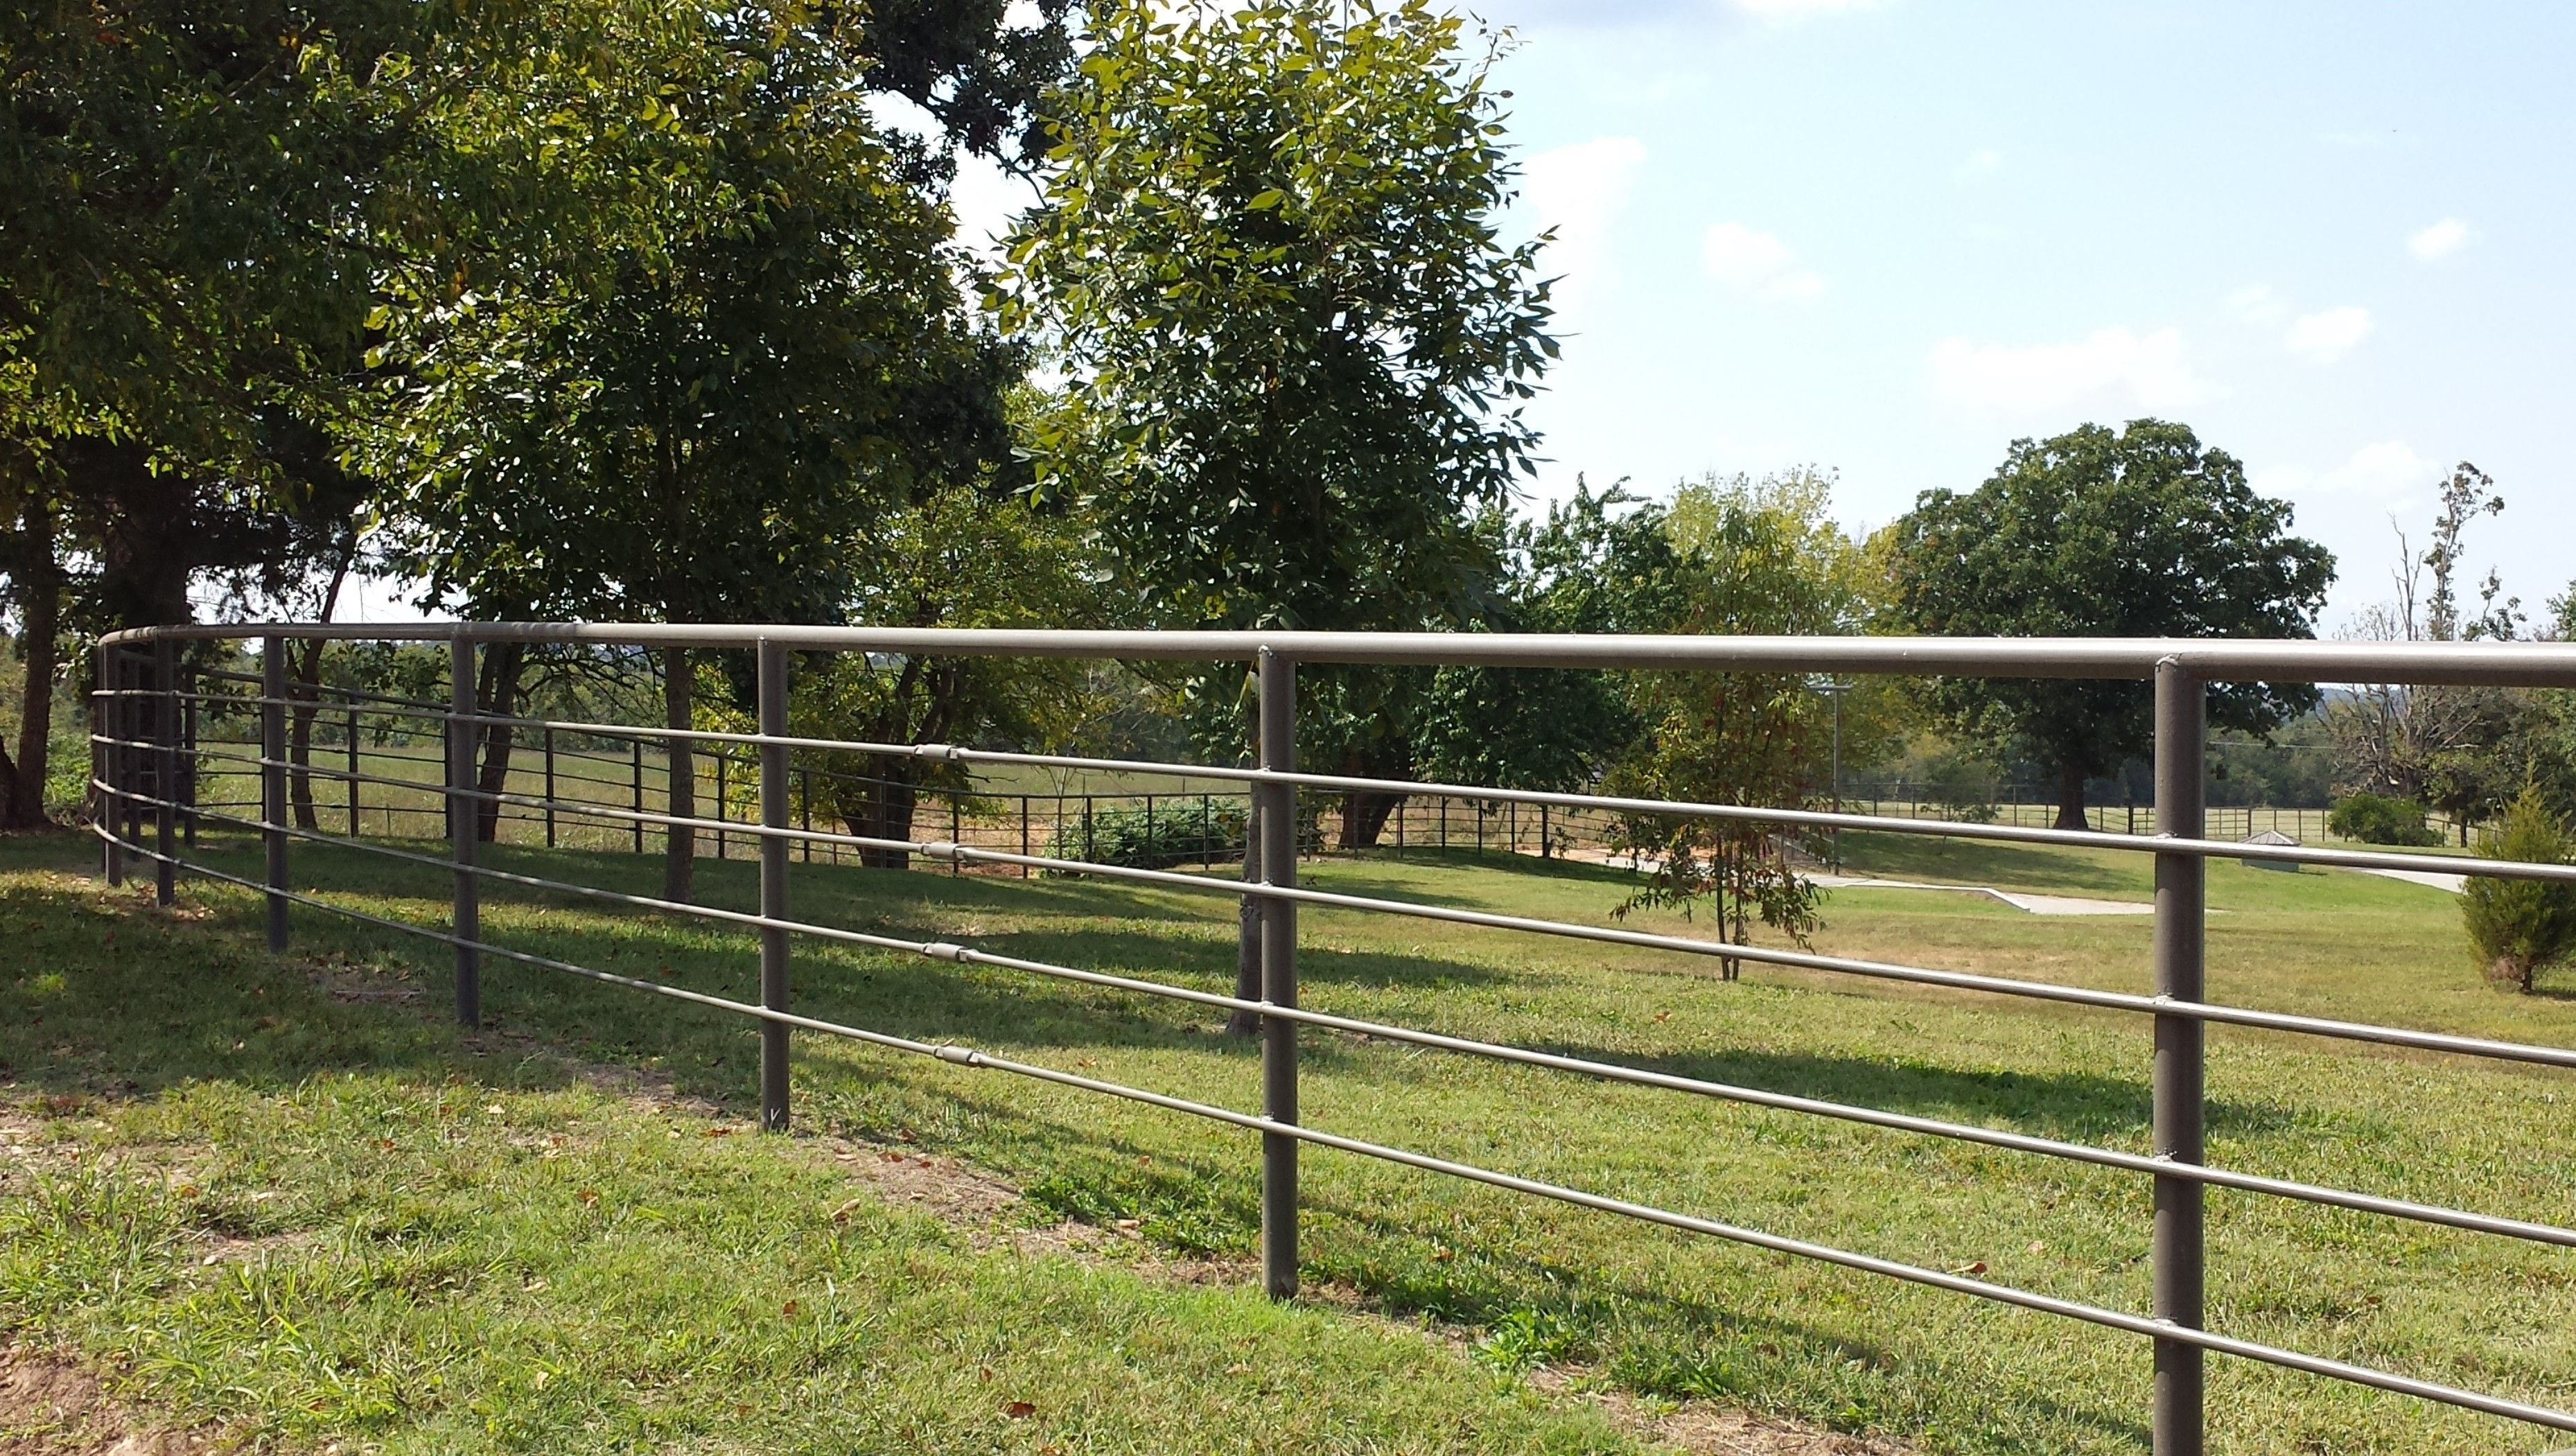 Pipe Fence Horses In 2019 Fencing Material Pipe Fence